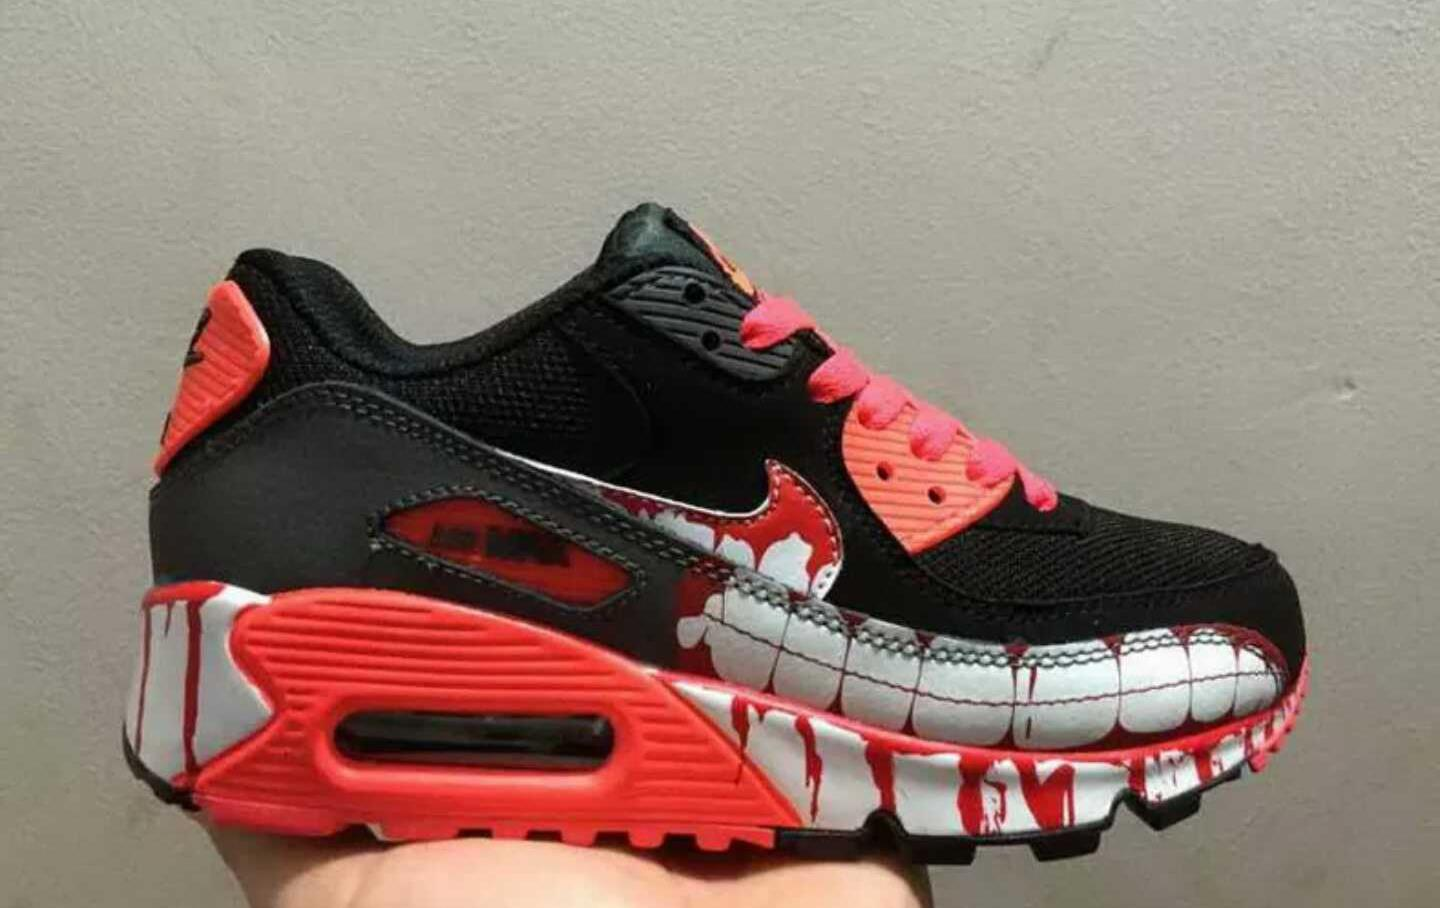 jordans coming on a christmas air max 90 tokyo ghoul